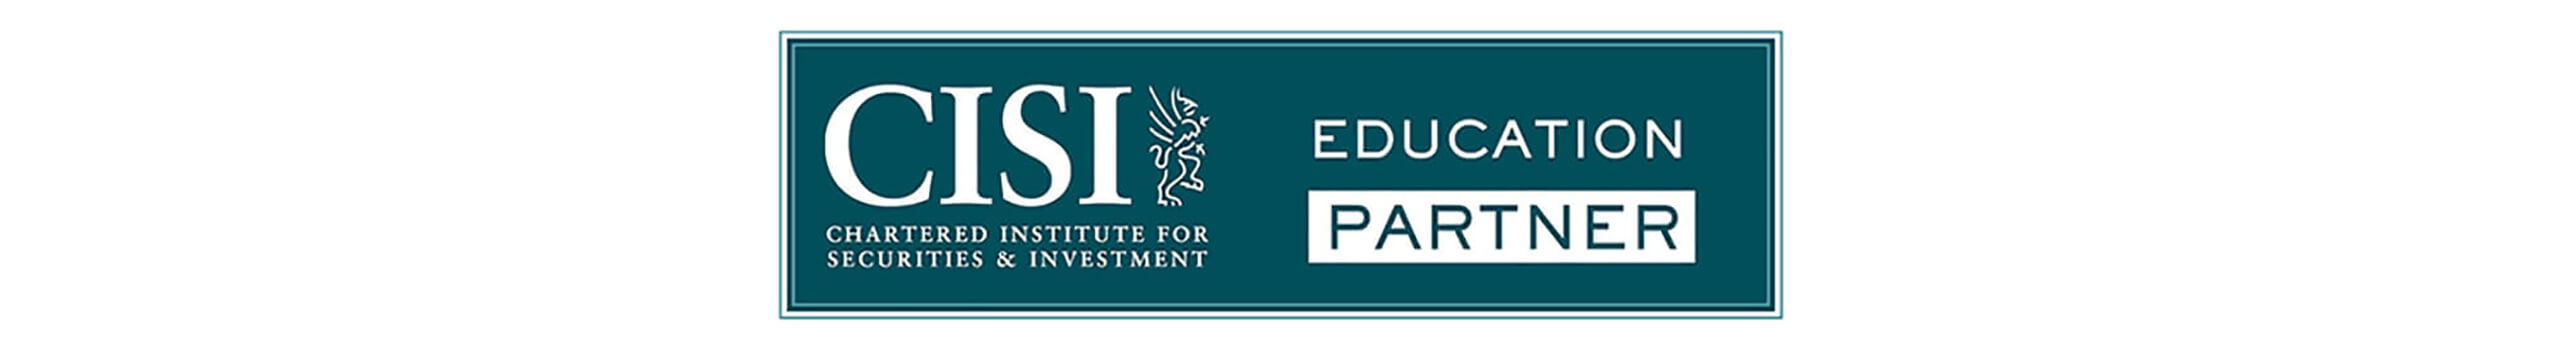 CISI Education Partner logo